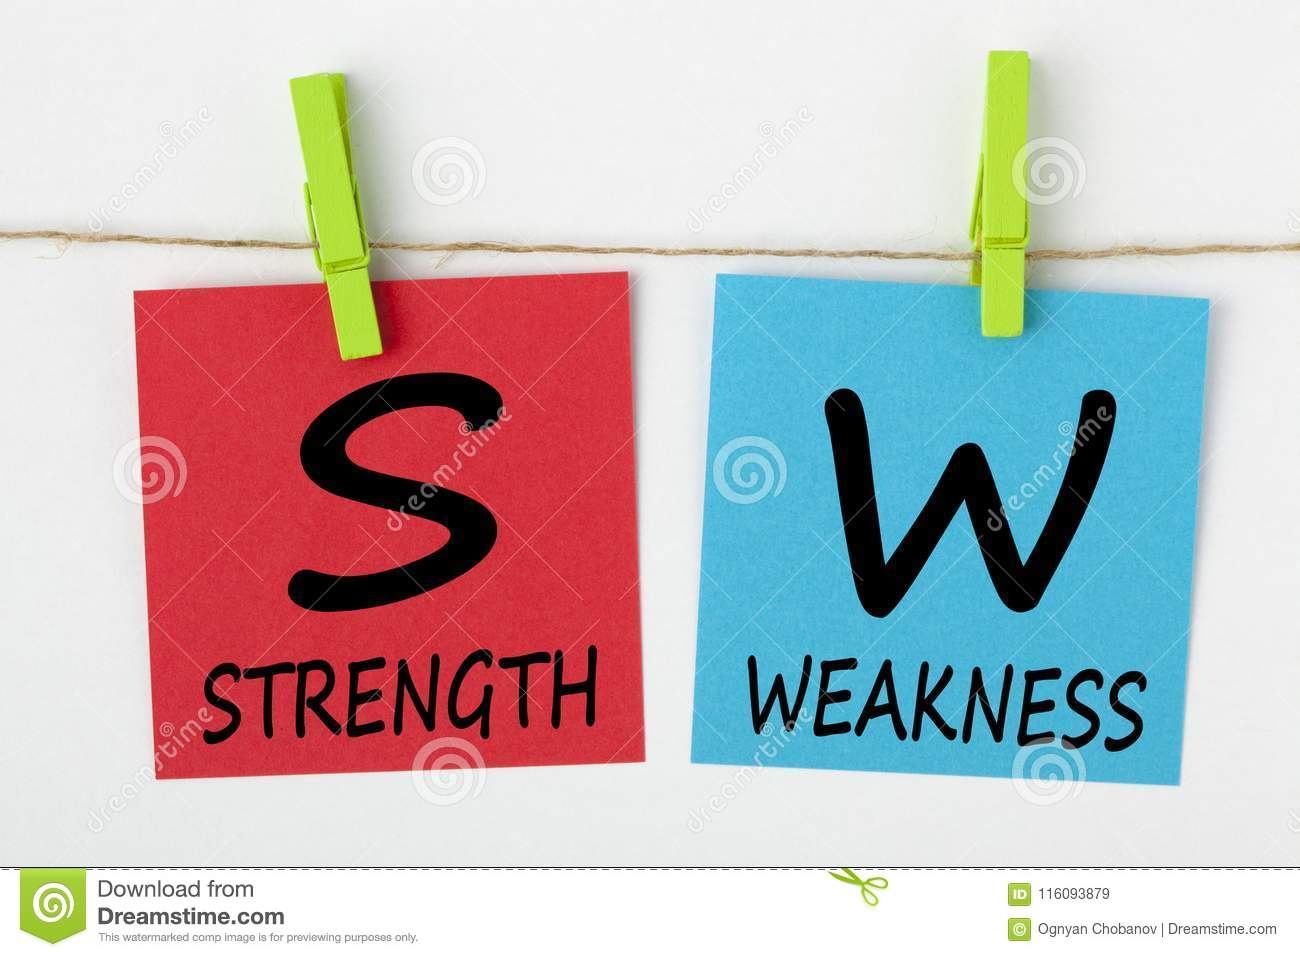 strength weaknesses concept stock image